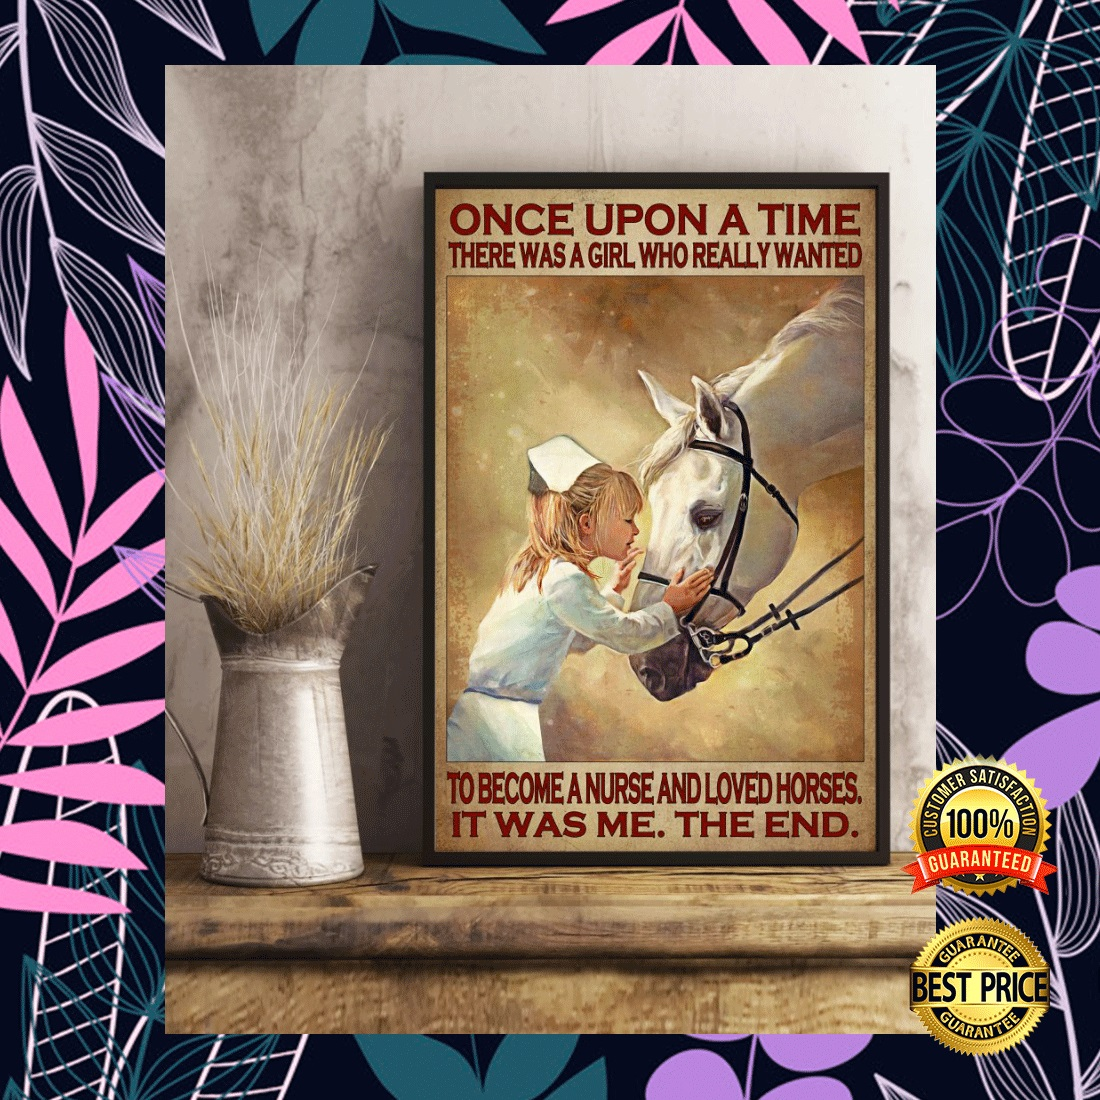 ONCE UPON A TIME THERE WAS A GIRL WHO REALLY WANTED TO BECOME A NURSE AND LOVED HORSES POSTER 7